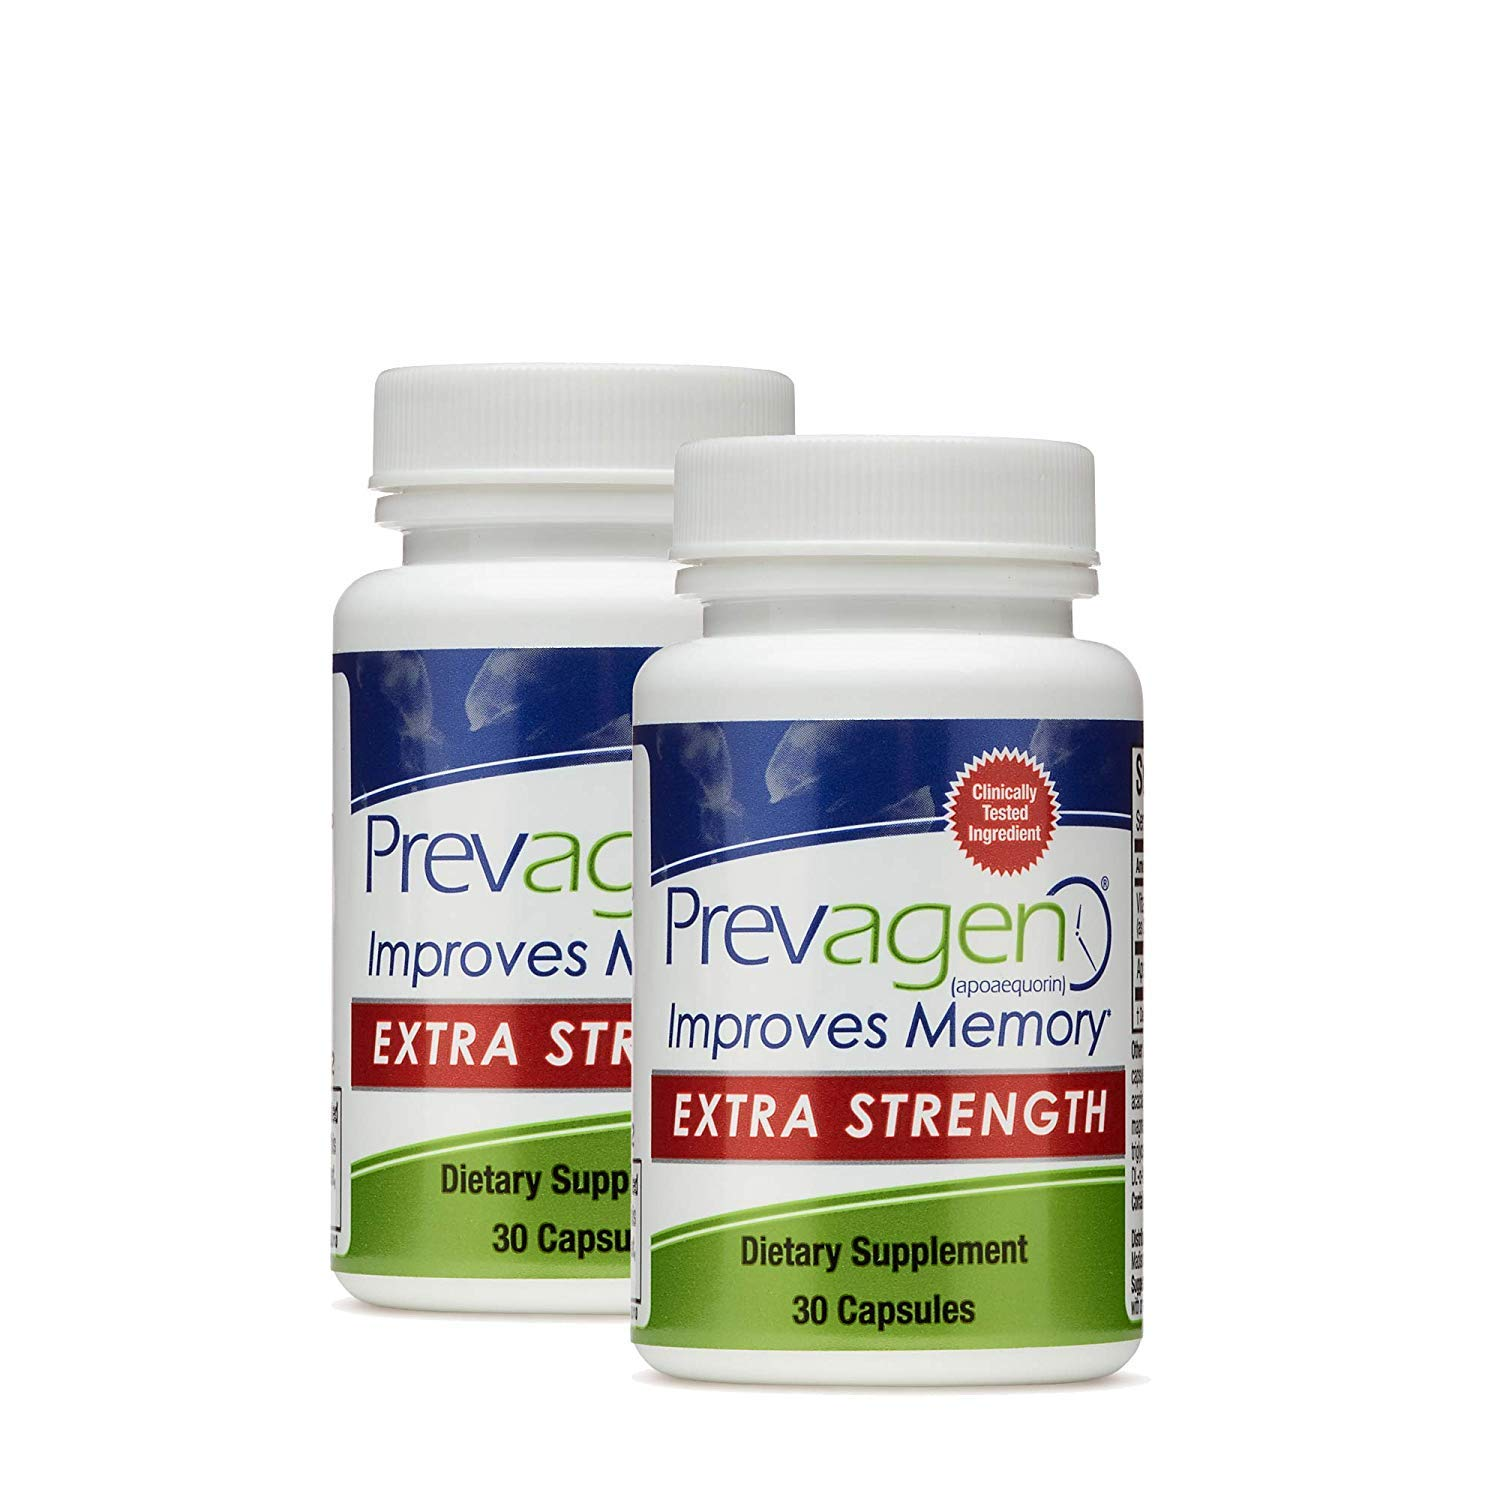 Prevagen Extra Strength - Twin Pack by Prevagen (Quincy-Bioscience) (Image #1)